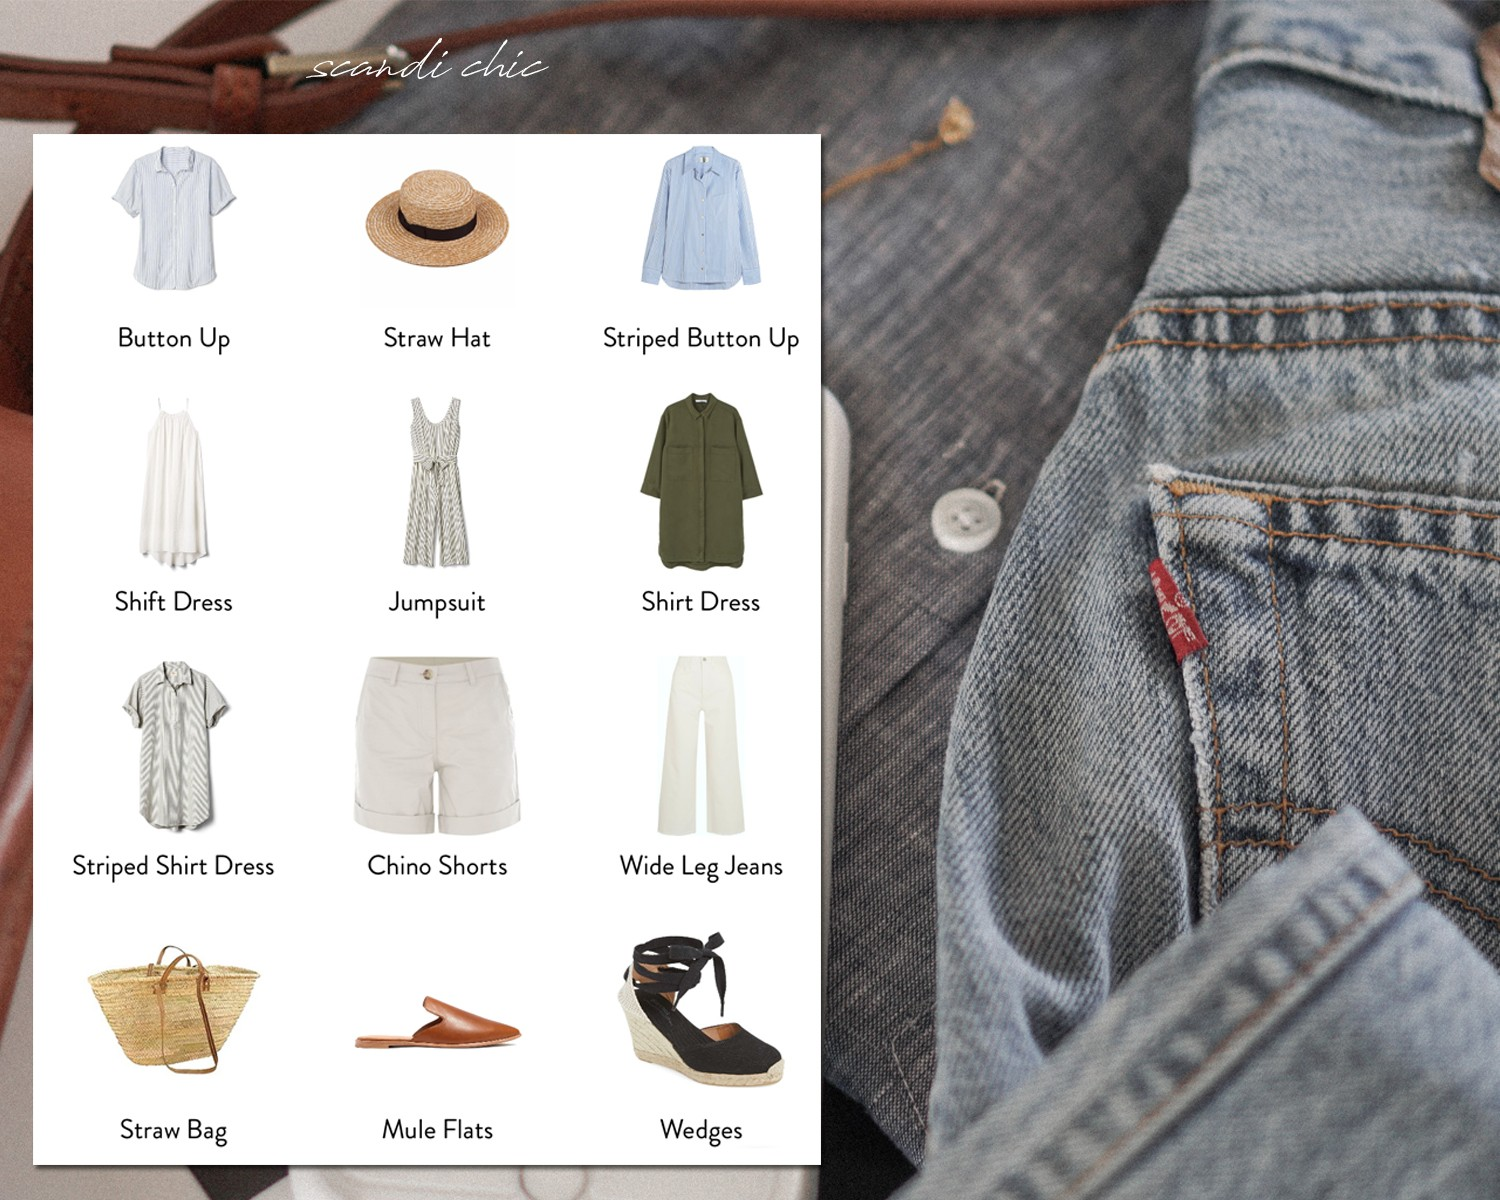 b352efa34b0 How to build a seasonless capsule wardrobe for a warm climate.